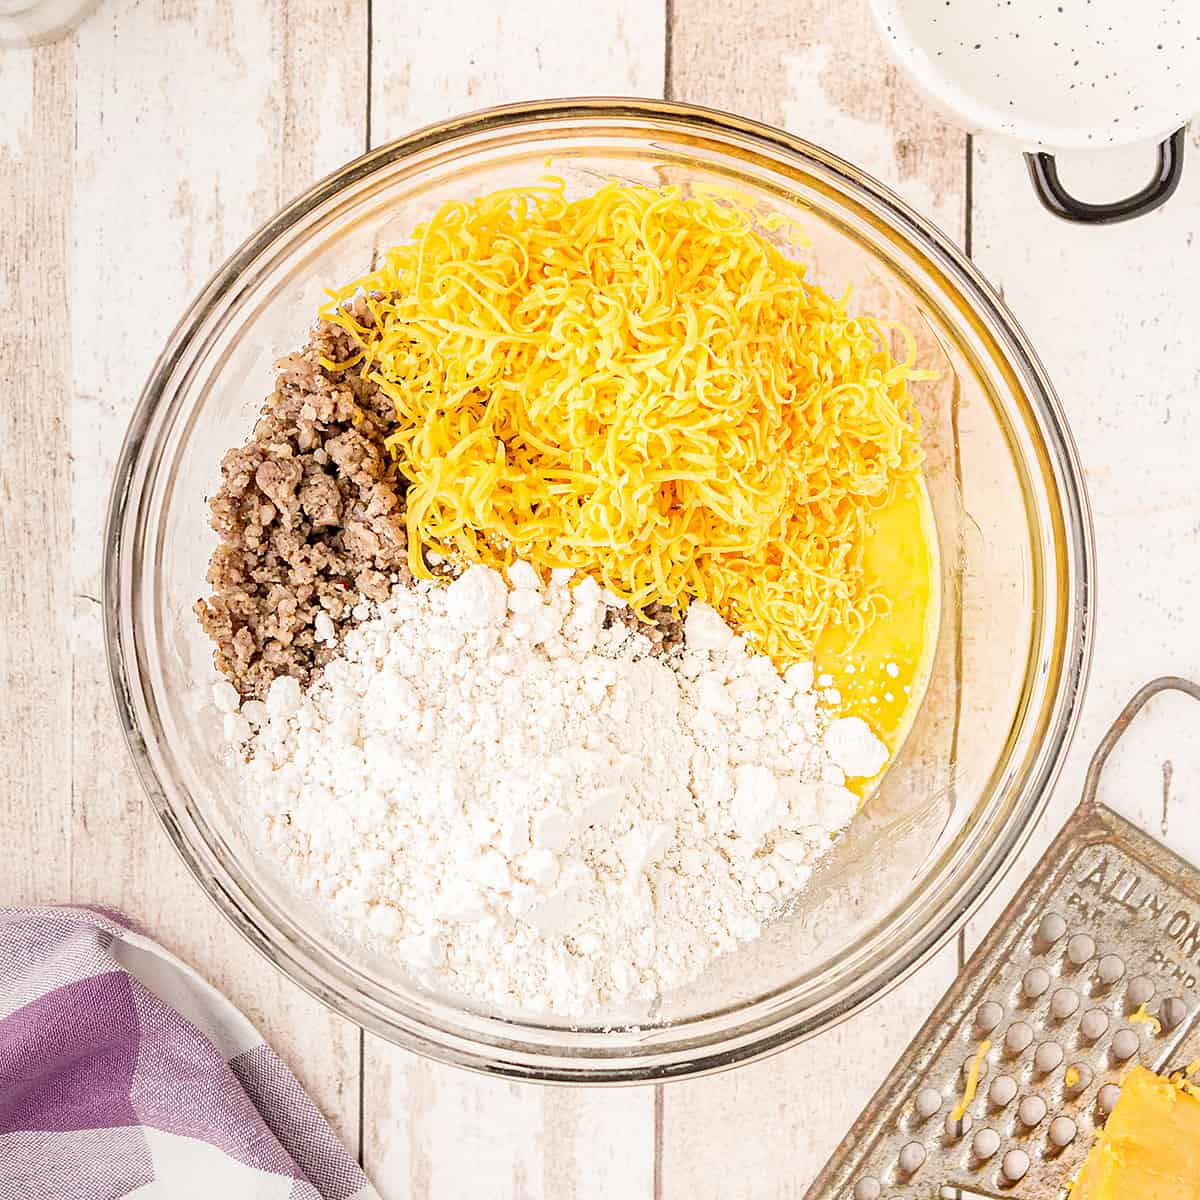 Mixing bowl containing sausage, cheese, eggs, and baking mix